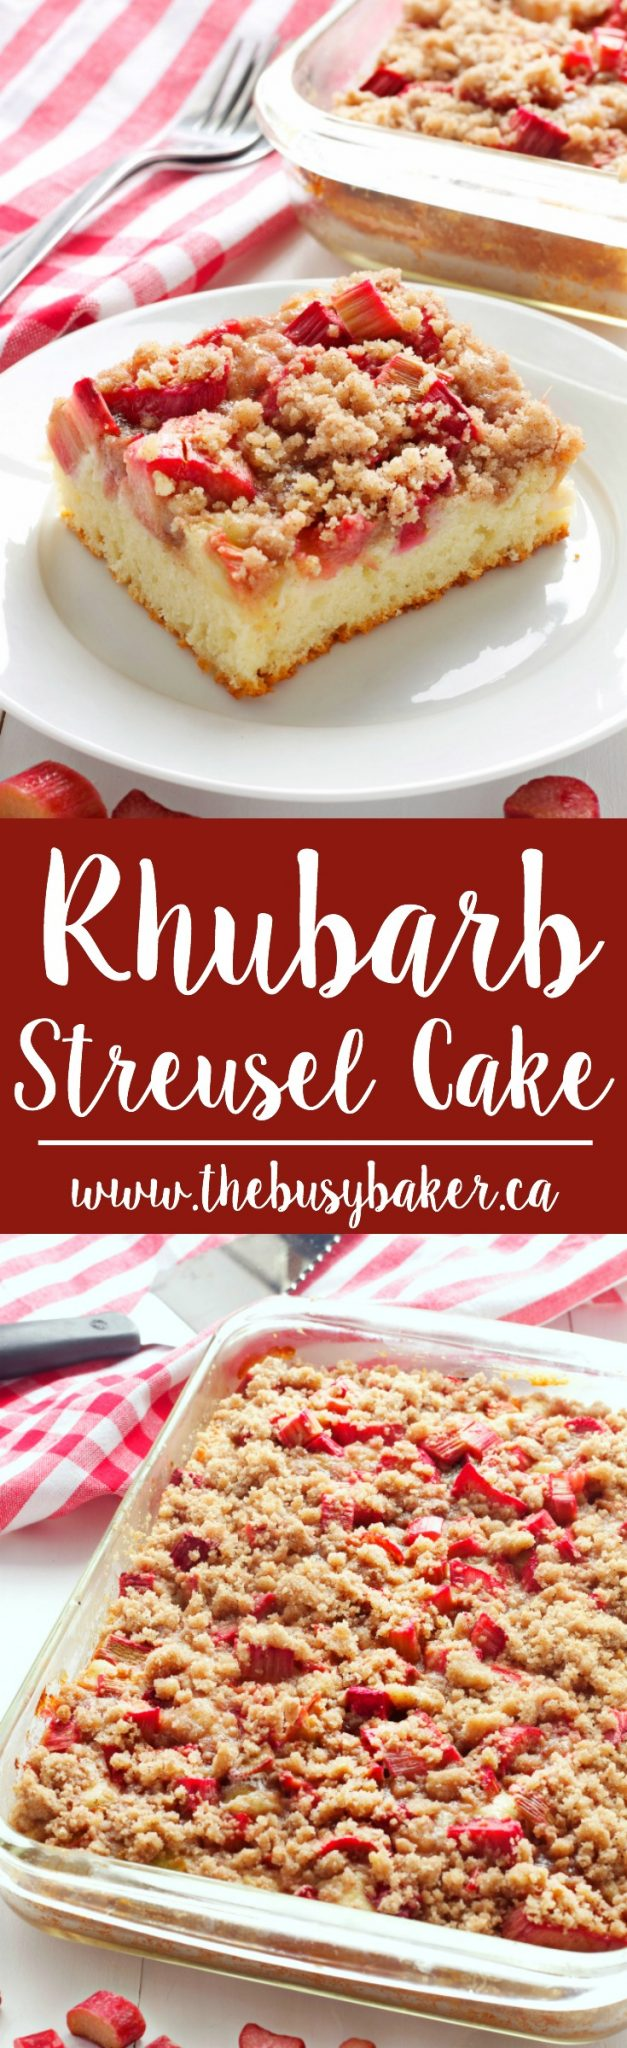 This Rhubarb Streusel Cake recipe is just like Grandma used to make! It's the perfect tender cake recipe with fresh rhubarb and a sweet and crispy streusel topping! Recipe from thebusybaker.ca! #rhubarbcake #streuselcake #sheetcake #rhubarbdessert via @busybakerblog